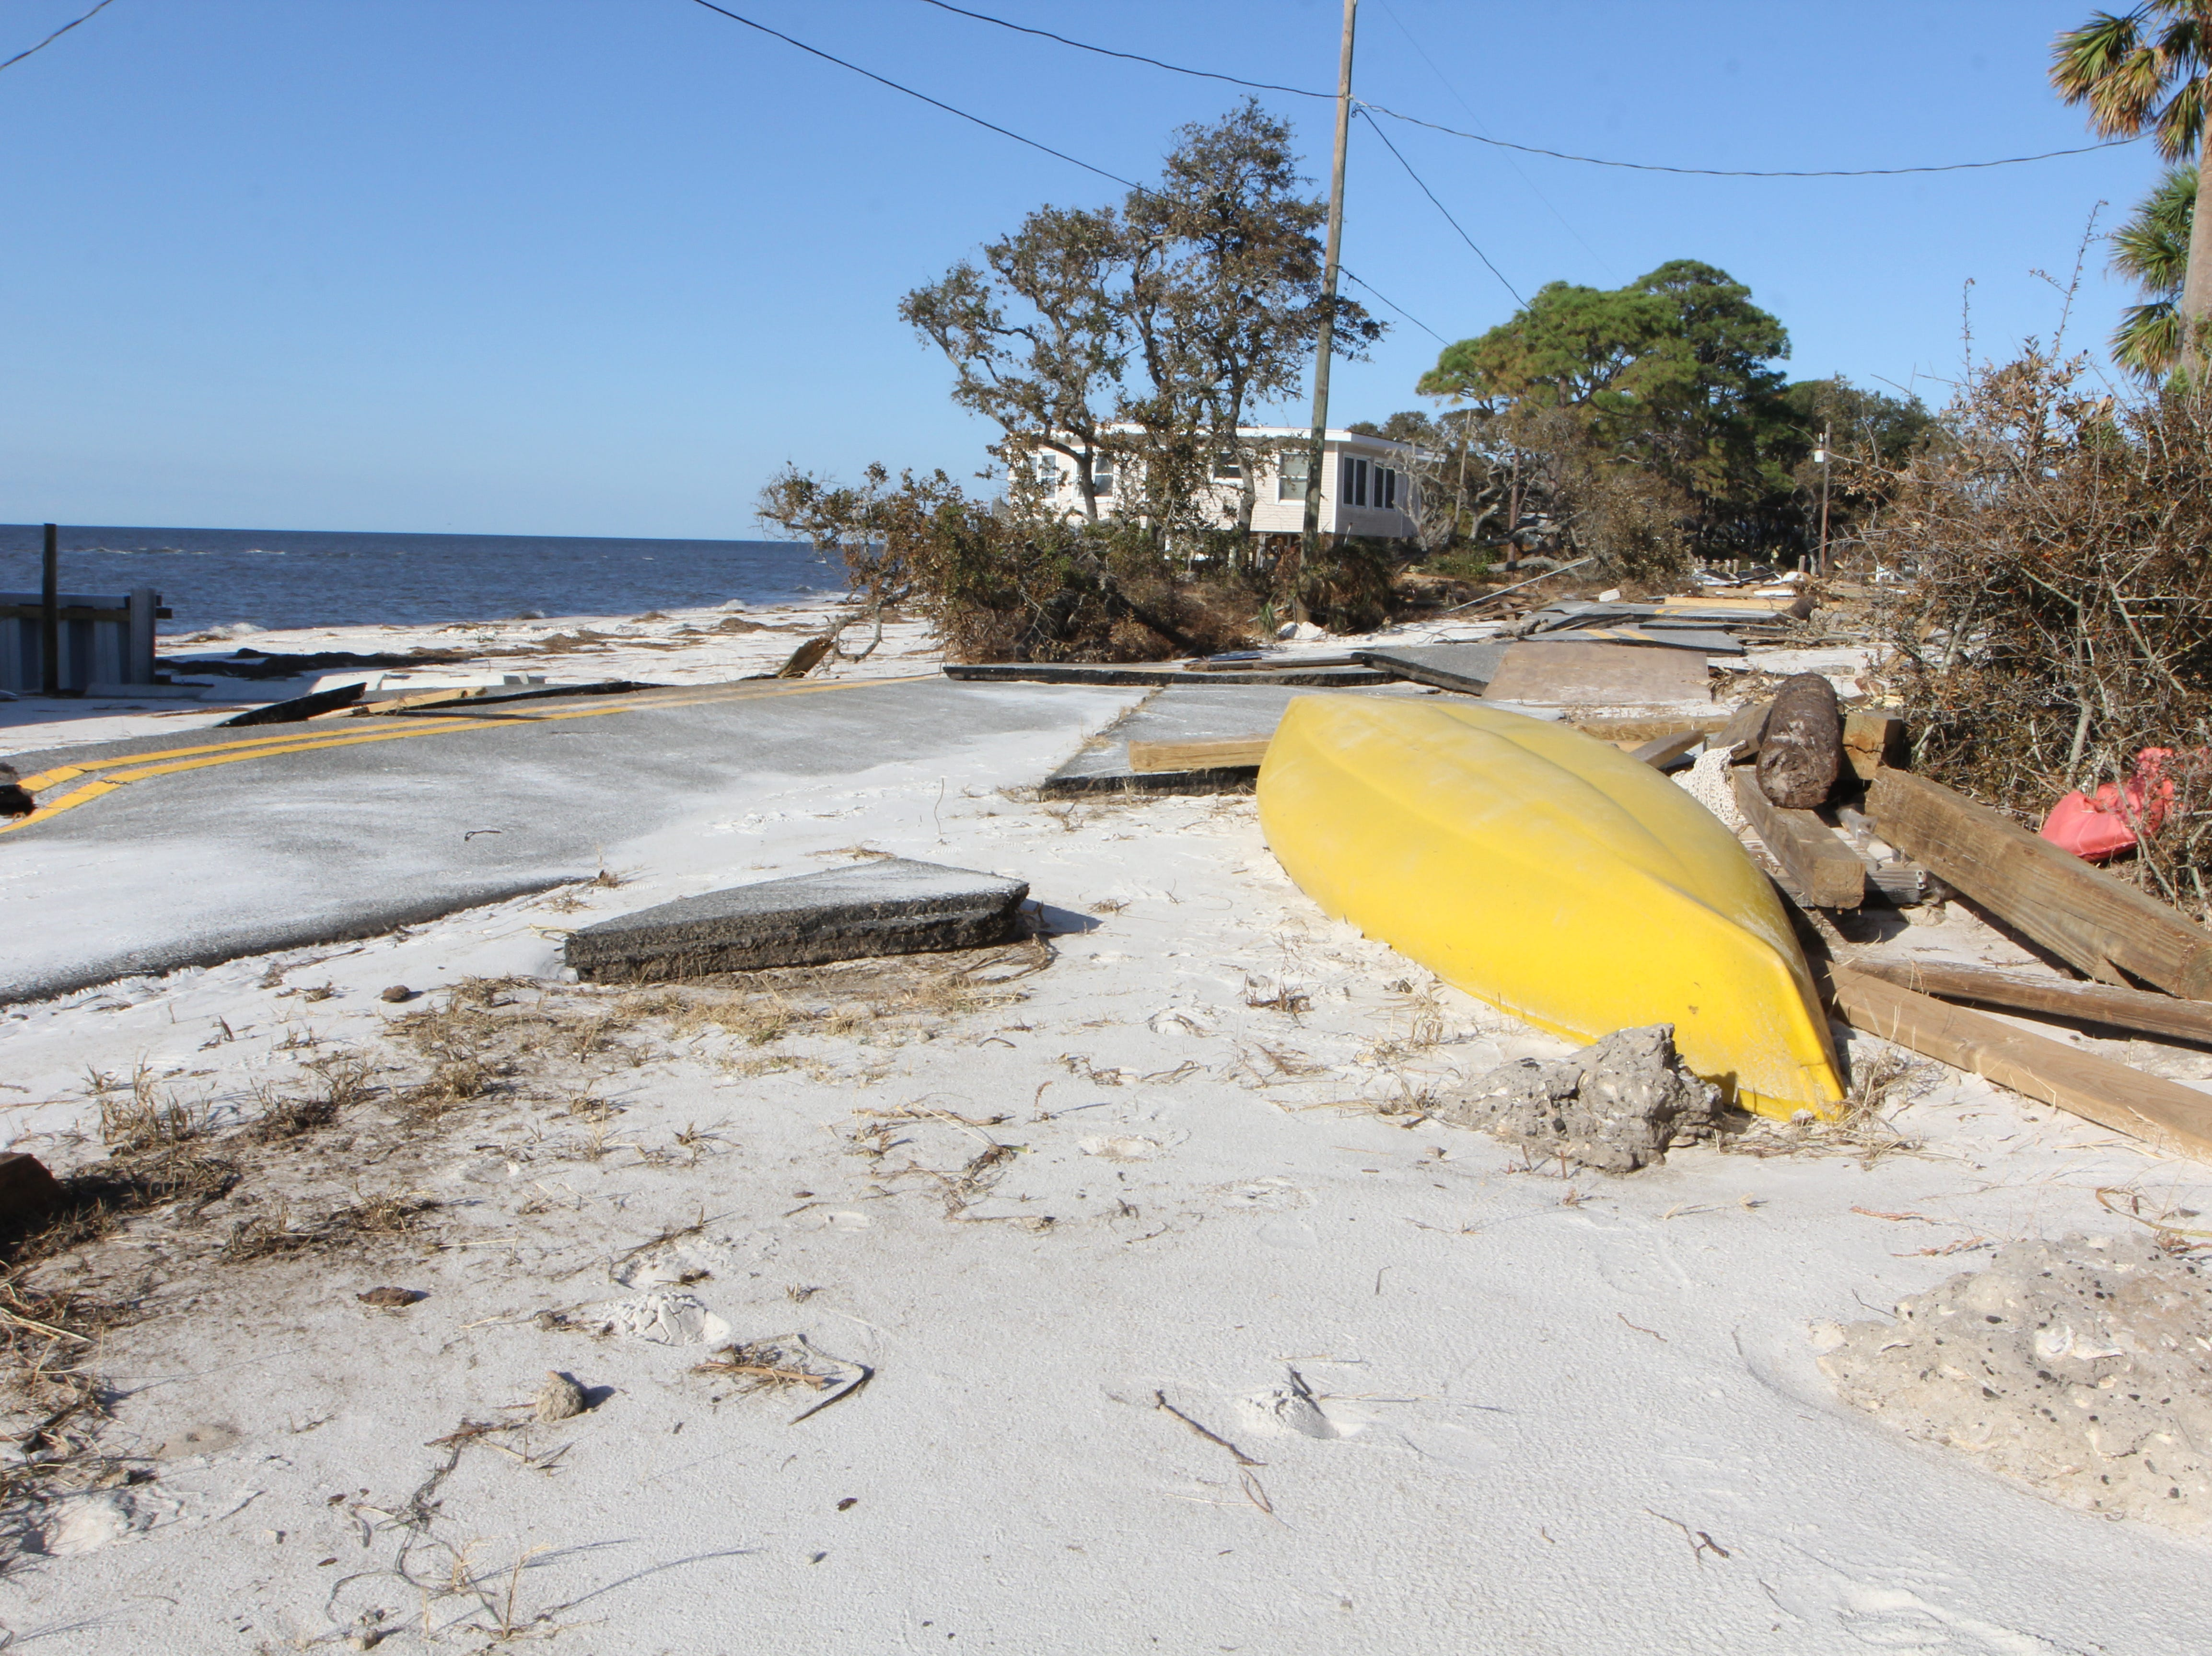 A kayak sits among rubble on Alligator Point after Hurricane Michael